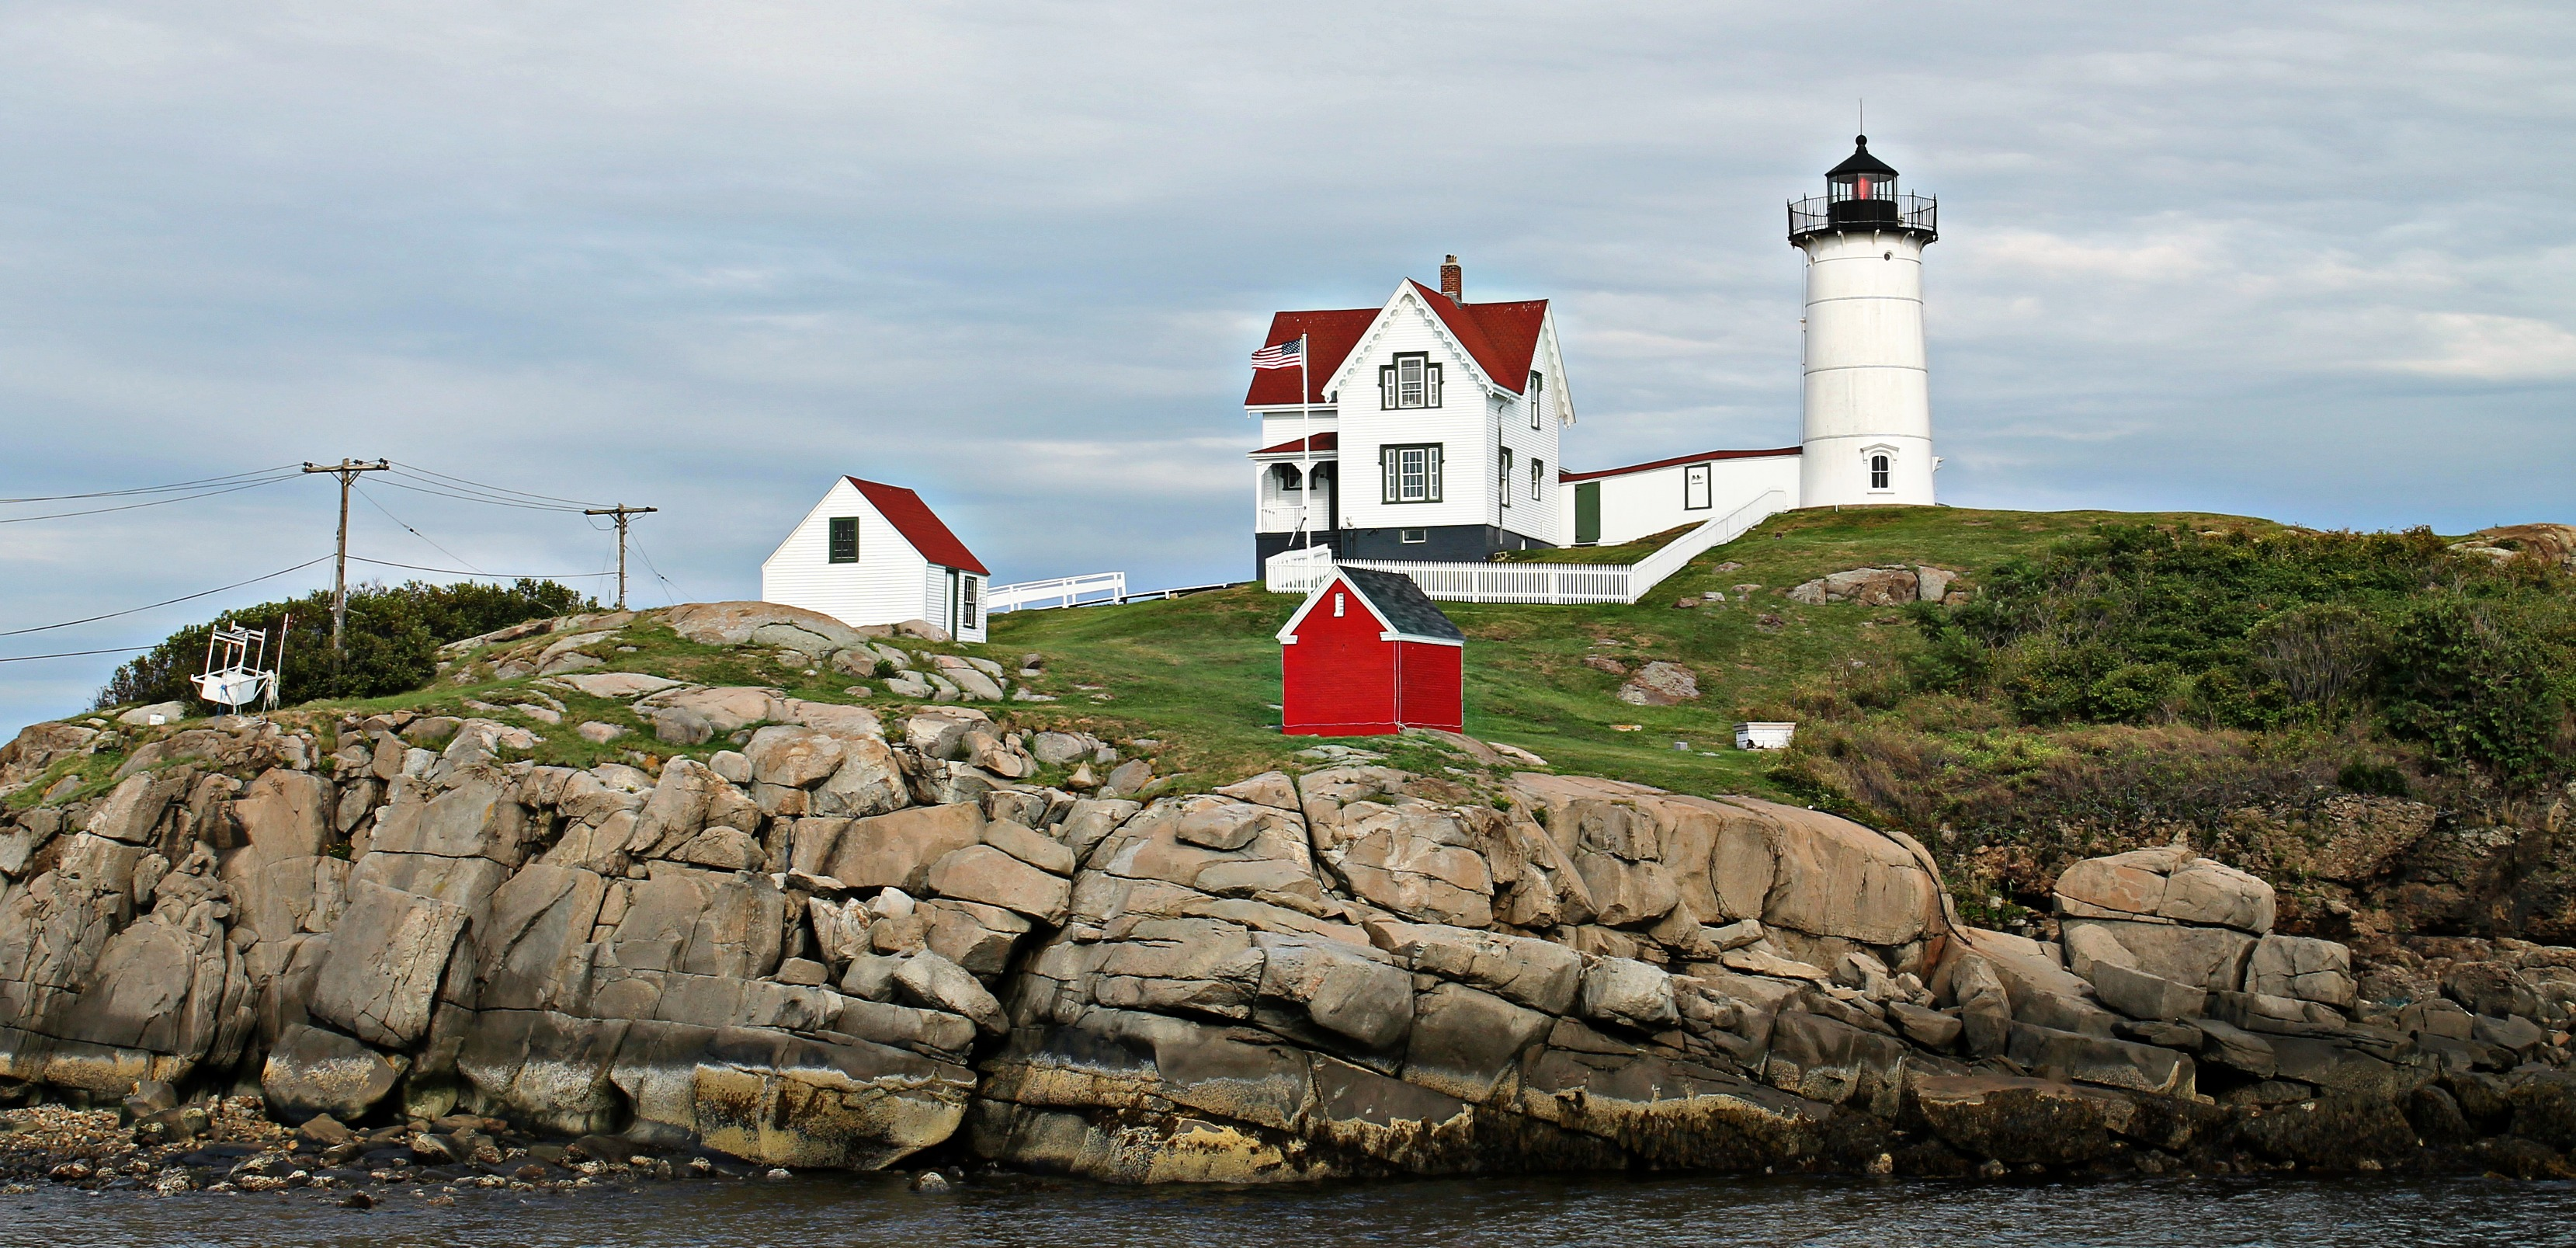 Nubble Light House York, Maine - MomSpotted